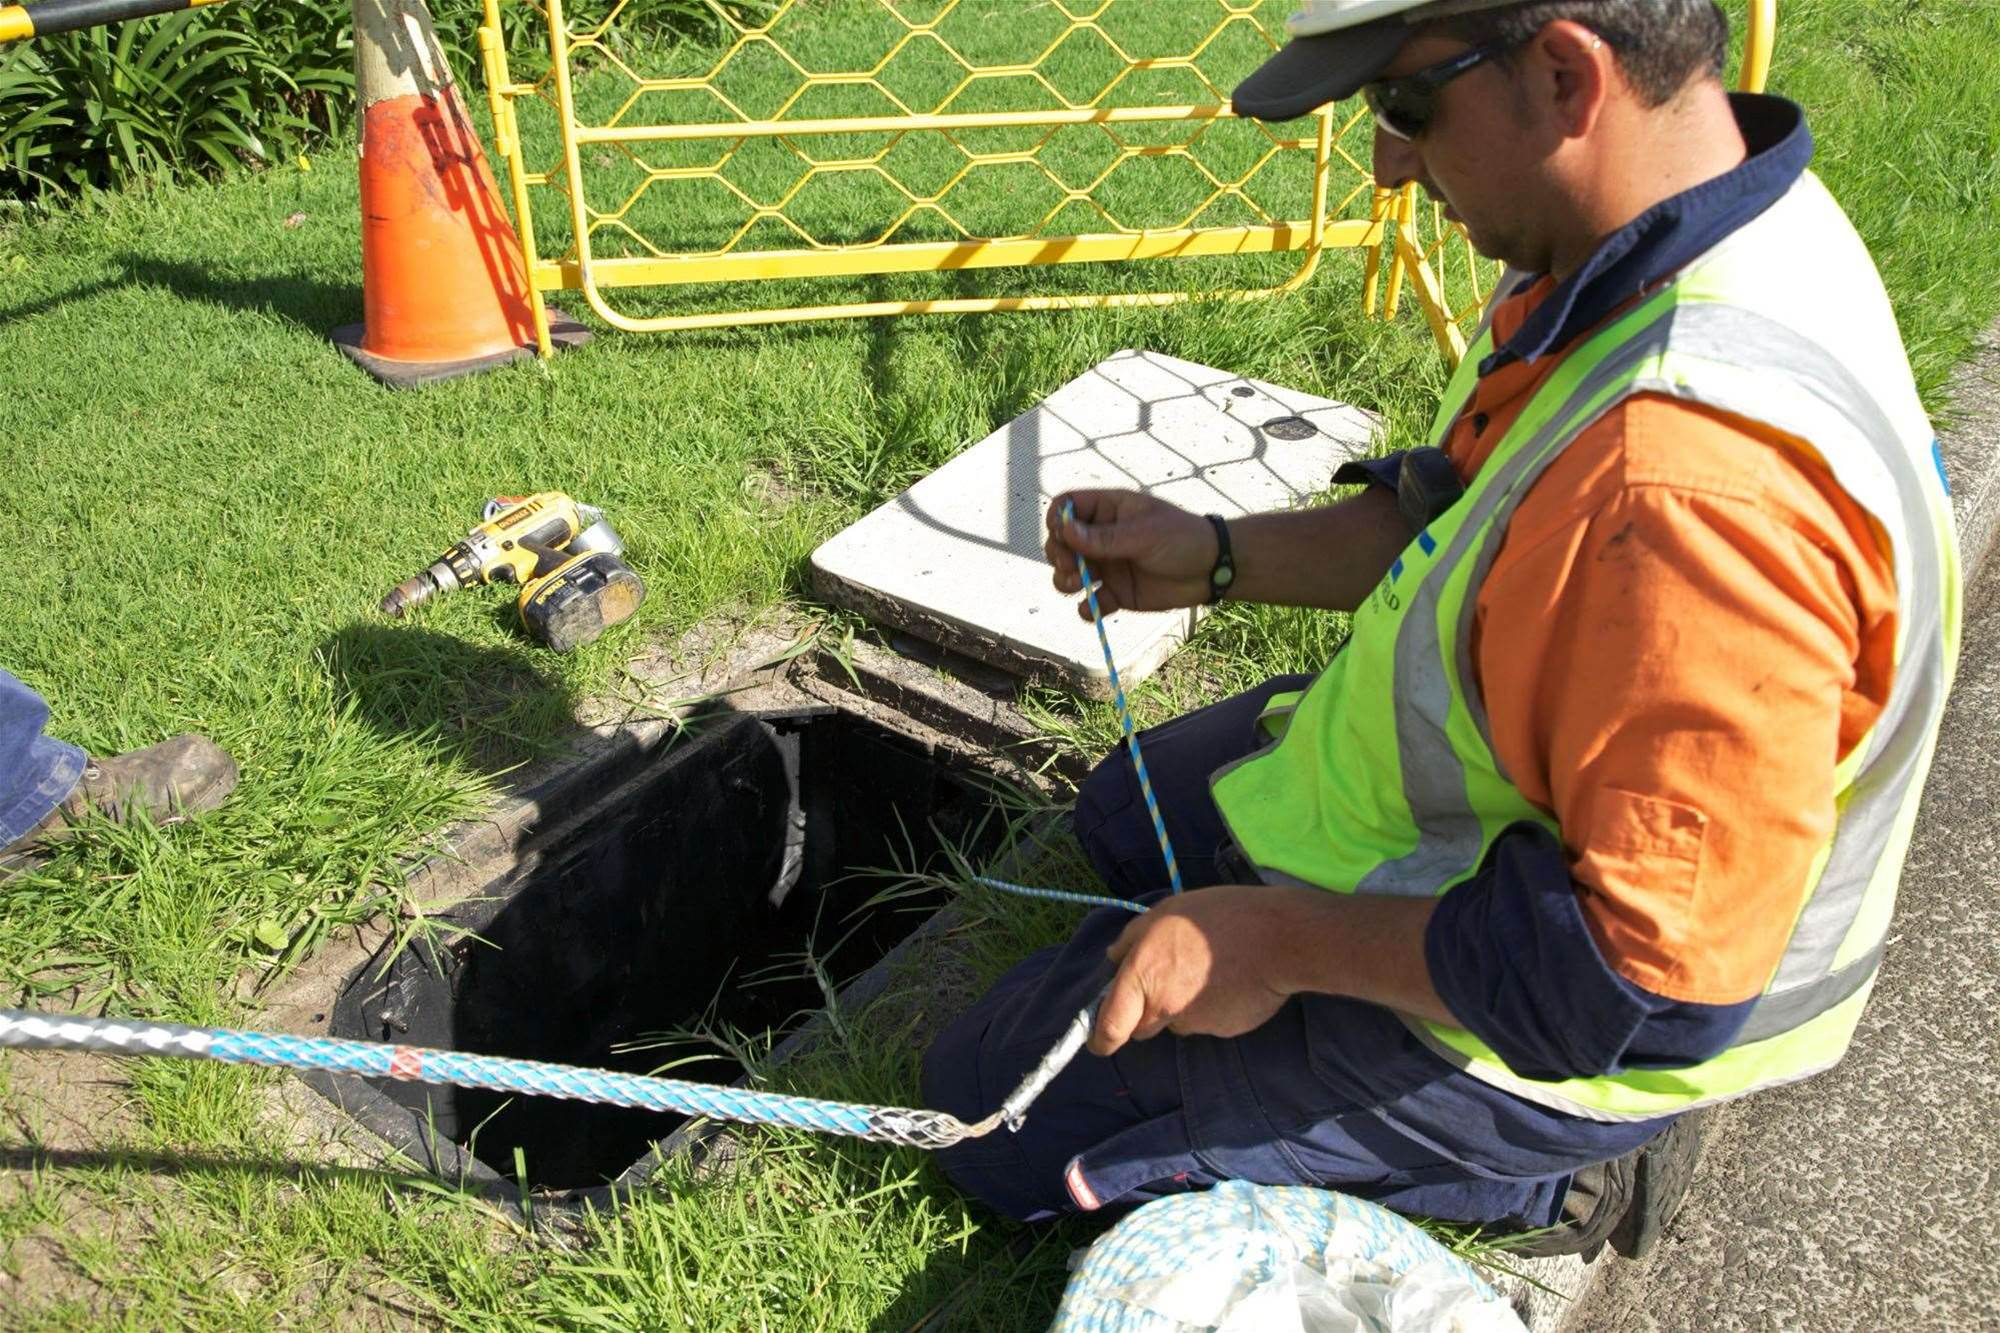 Govt should start scoping NBN sell-off in 'near term'